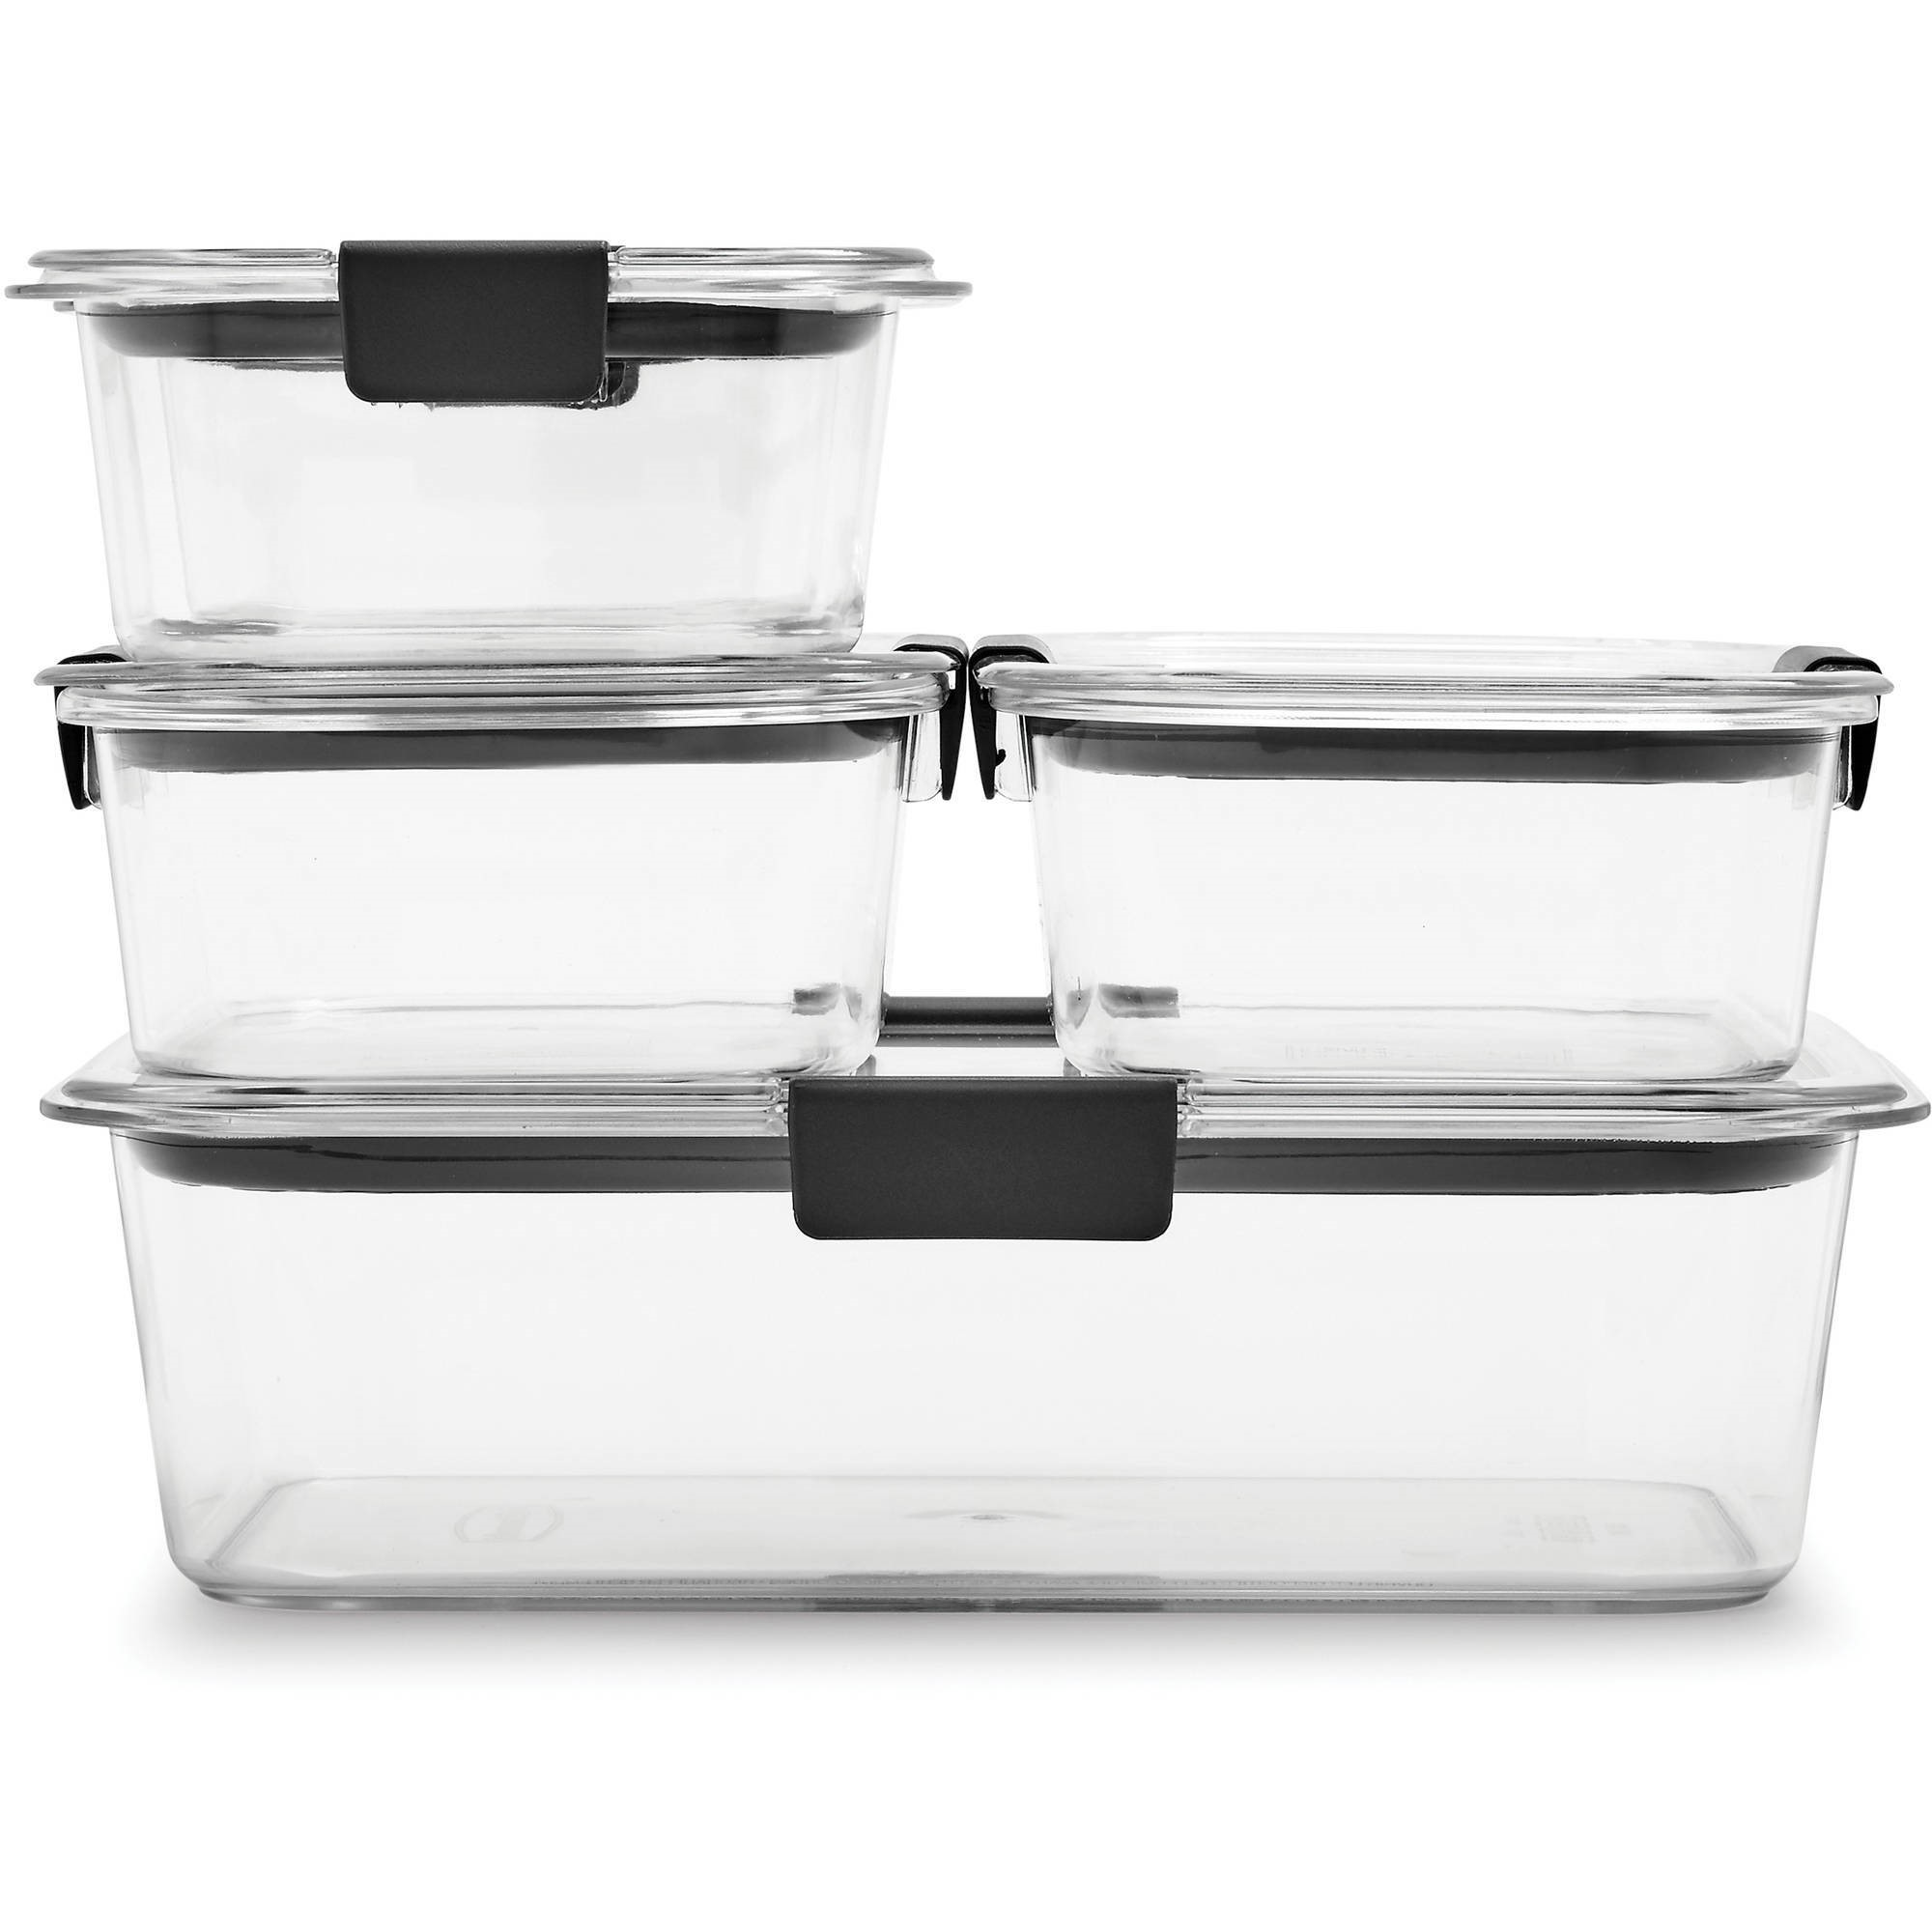 Rubbermaid Brilliance Food Storage Containers Only $17.99 (Reg $22.98) + Free Store Pickup at Walmart.com!